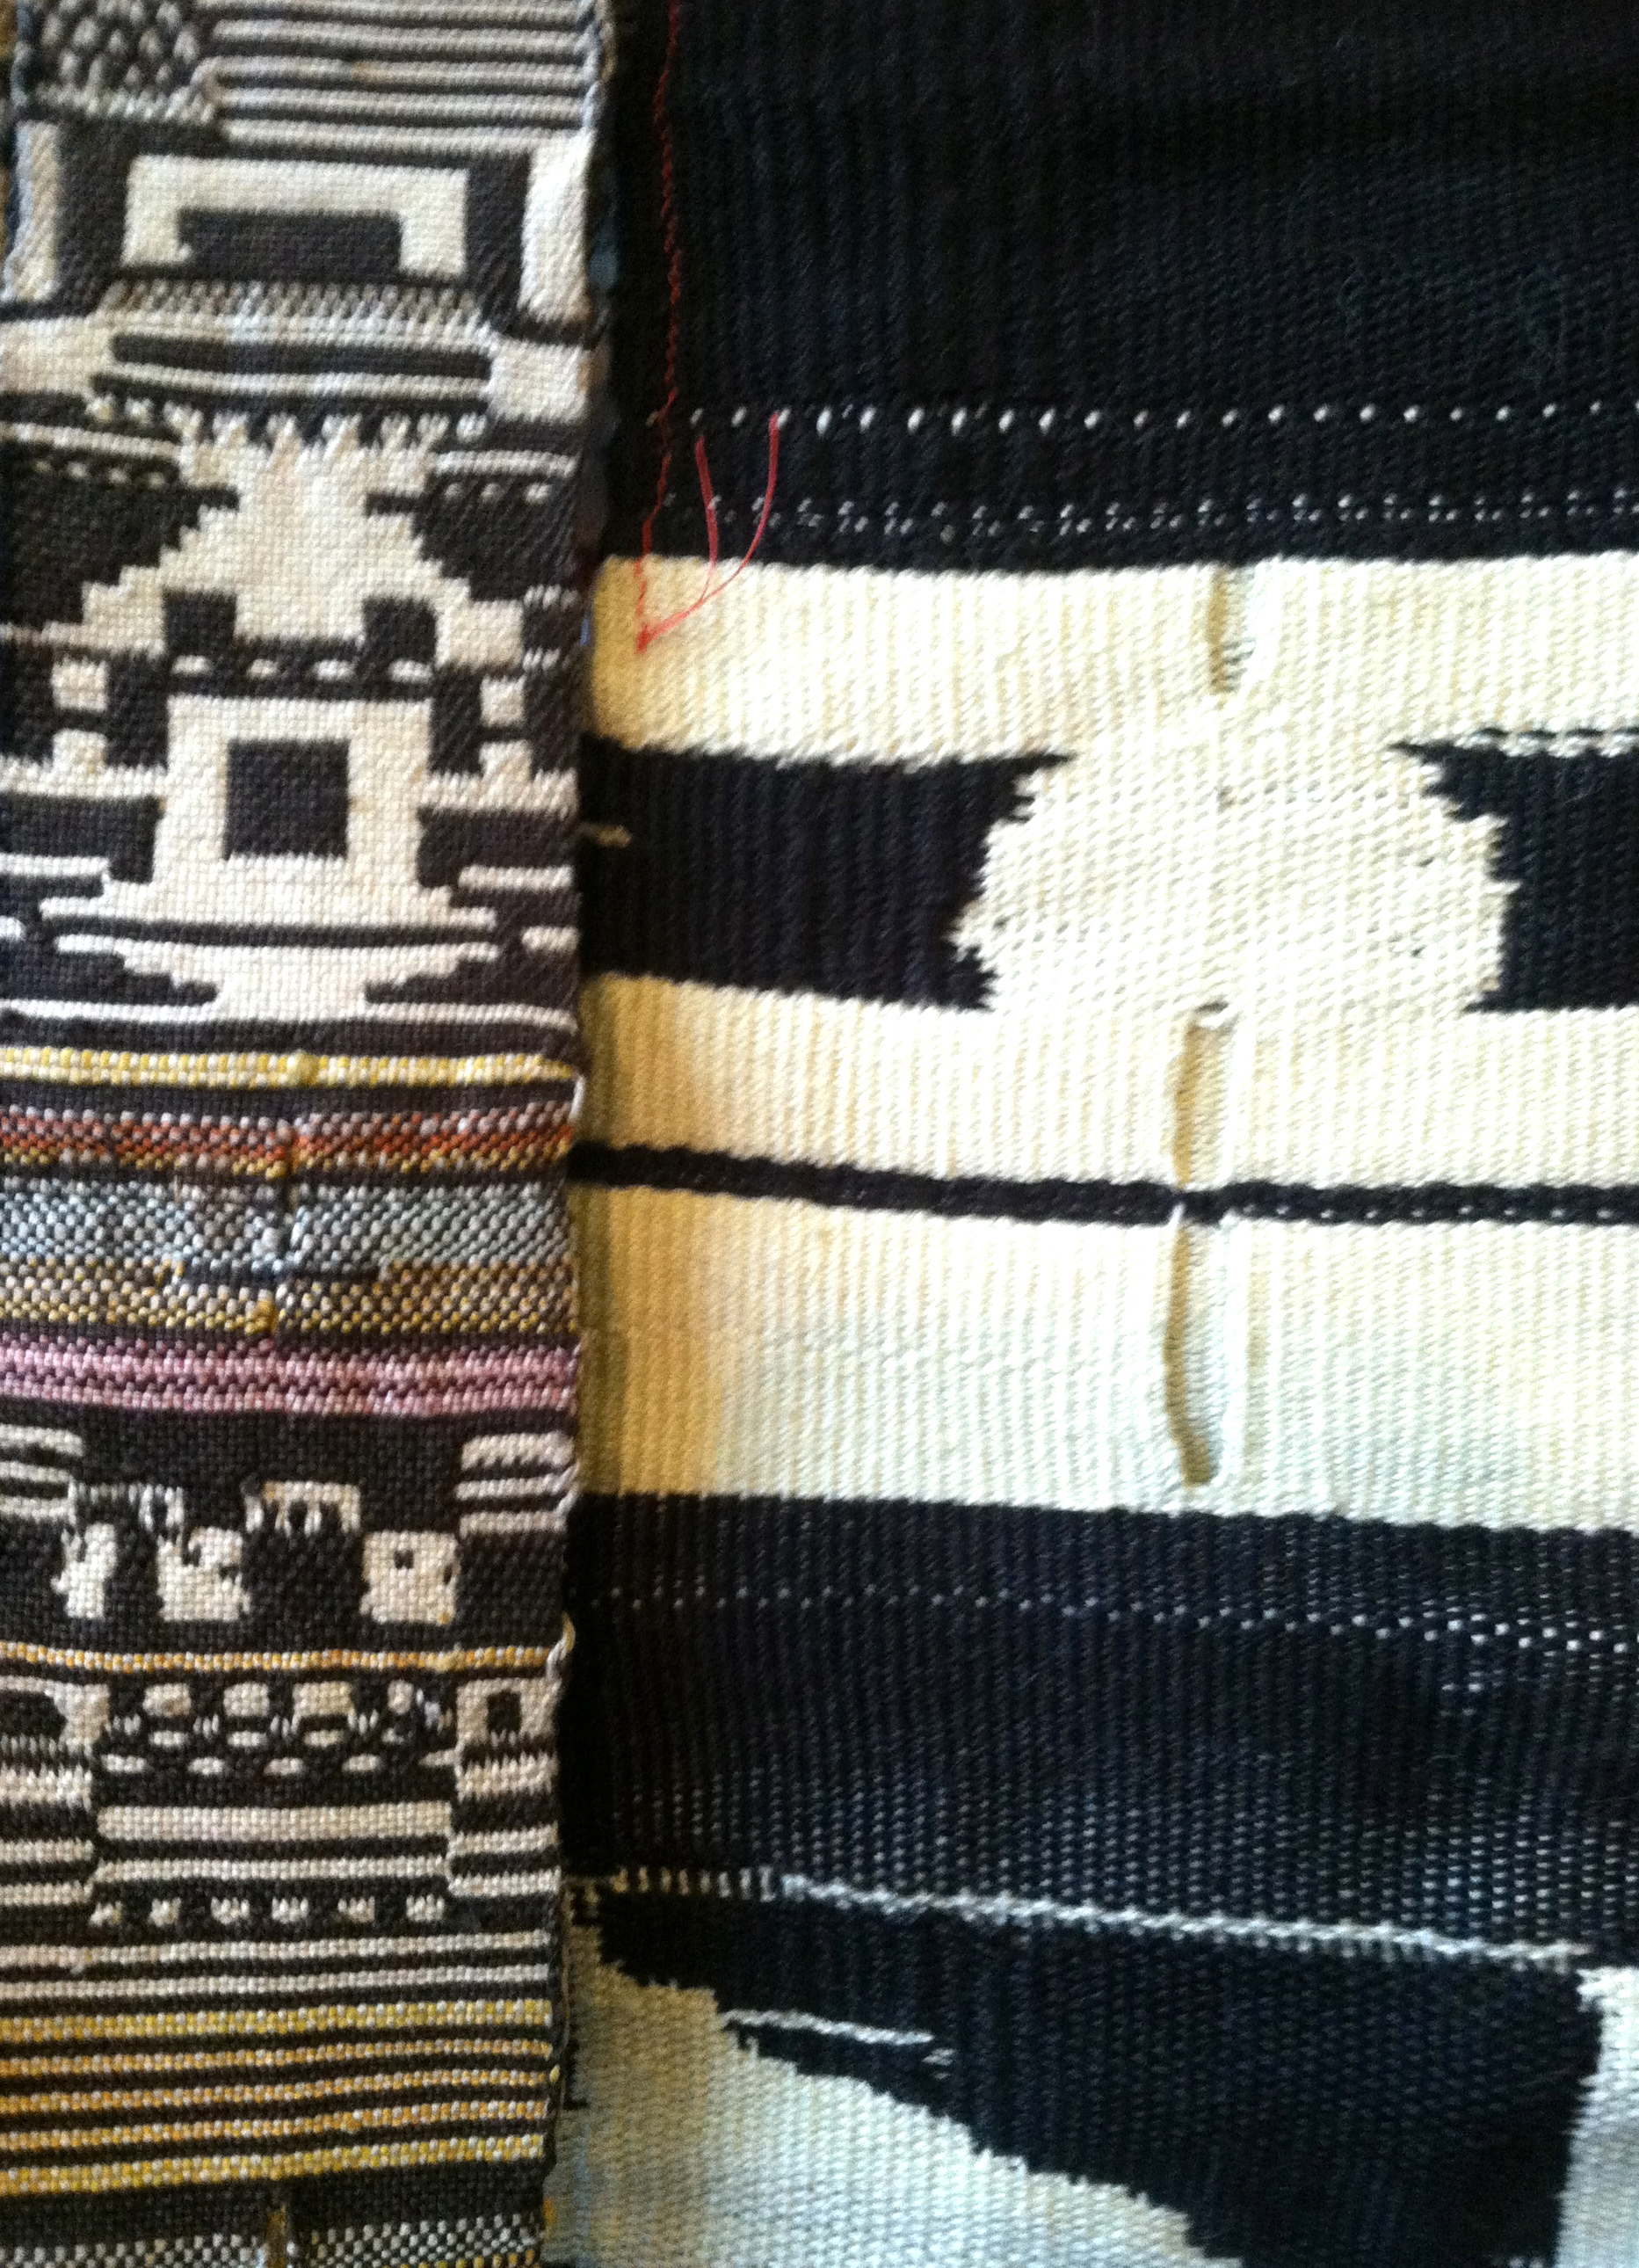 Woven Double Cloth Textiles